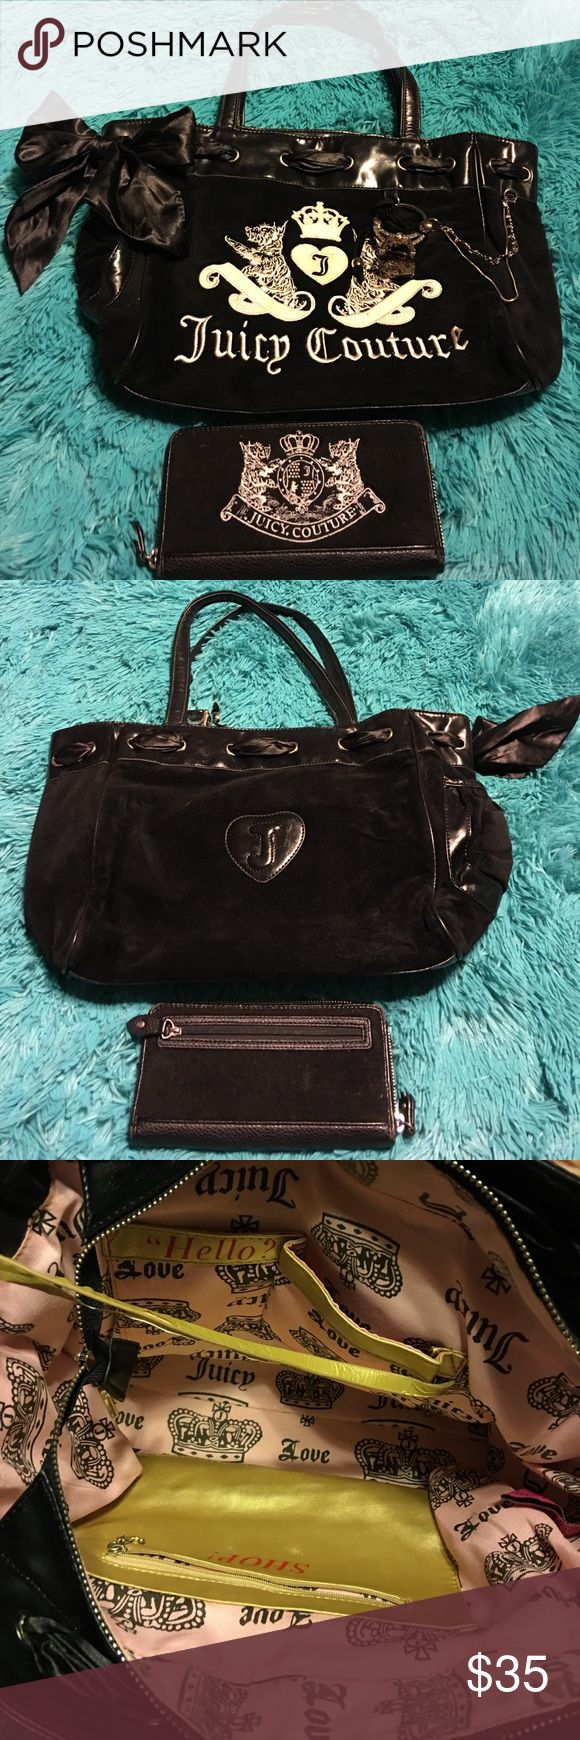 Juicy Couture purse and wallet. Pre owned Juicy Couture purse and wallet. Some wear to wallet edges and peeling to string that holds mirror. Otherwise great shape. Juicy Couture Bags Shoulder Bags